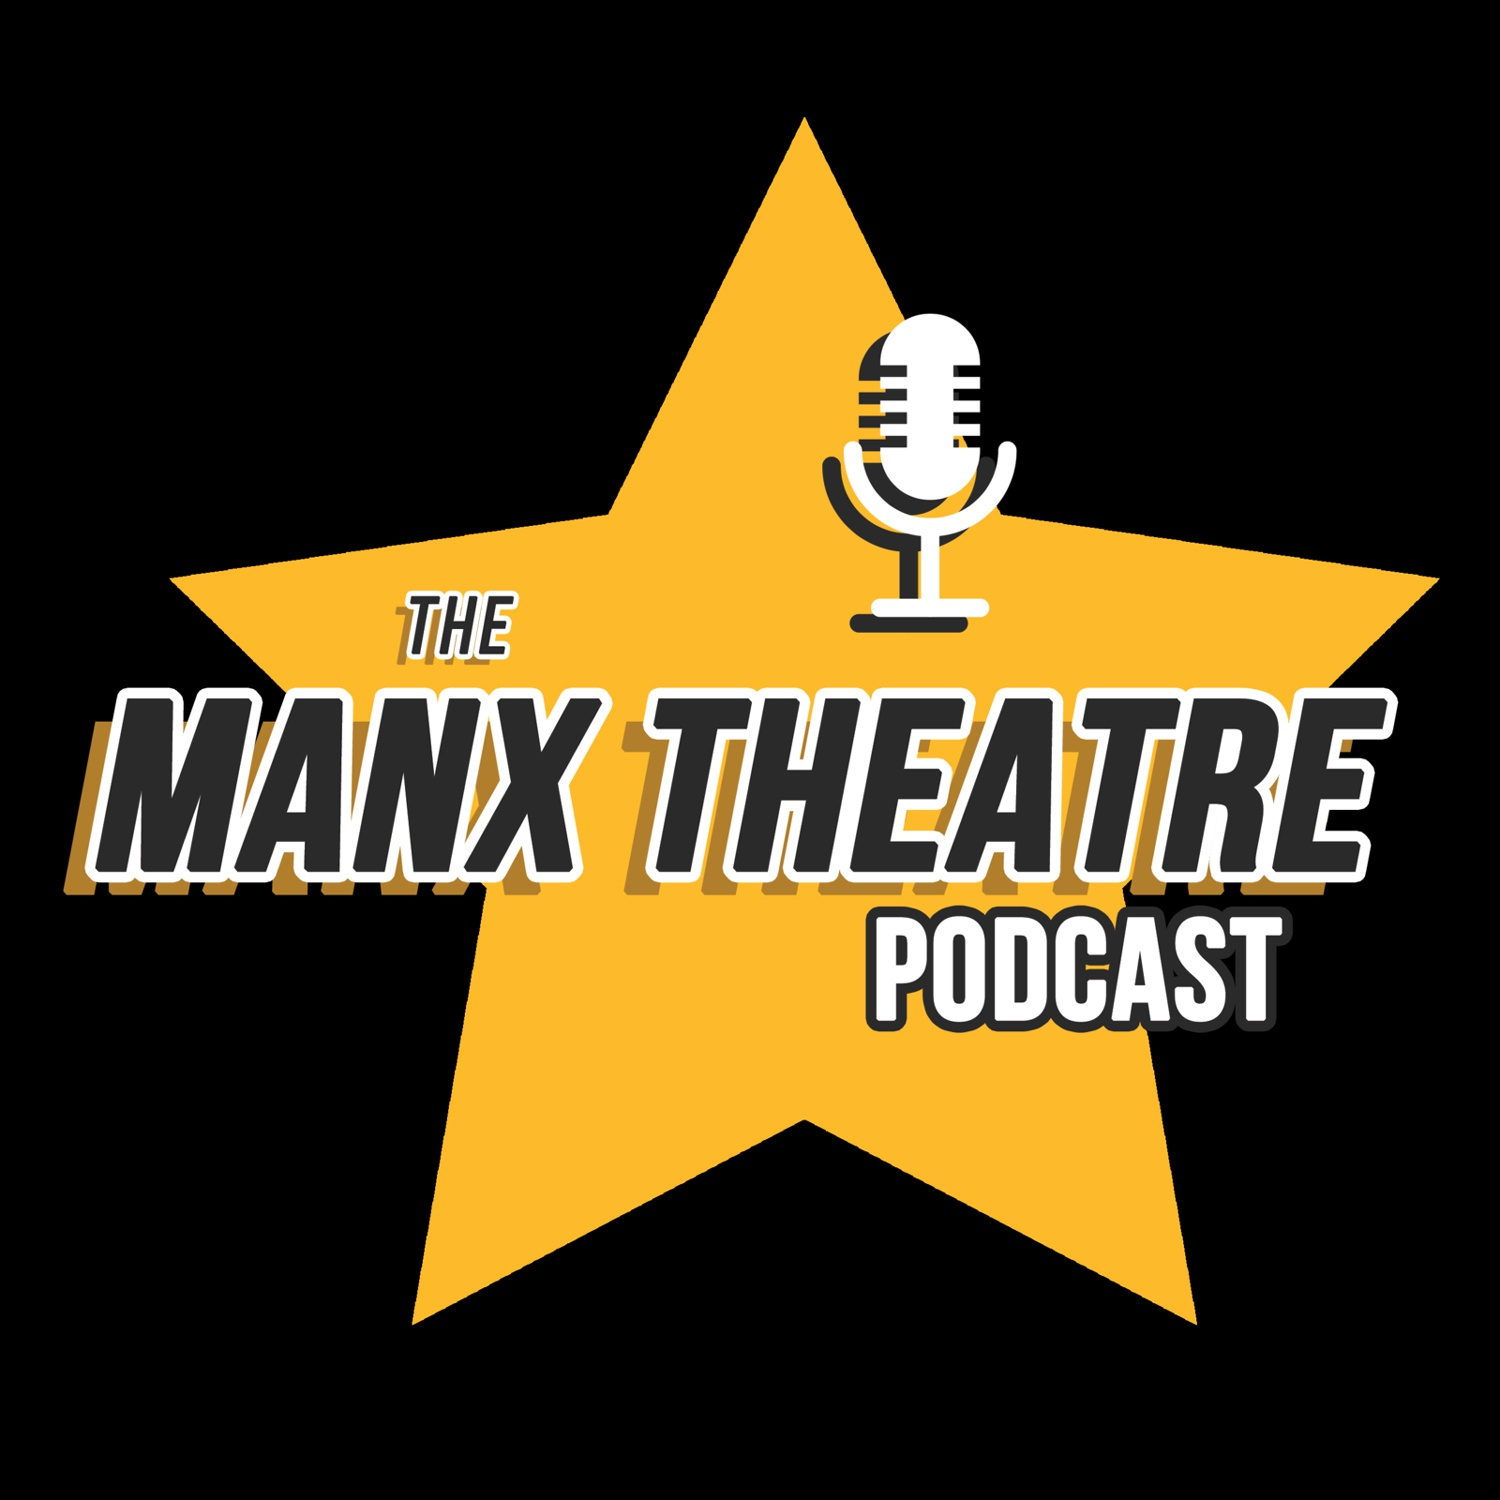 Manx Theatre Podcast